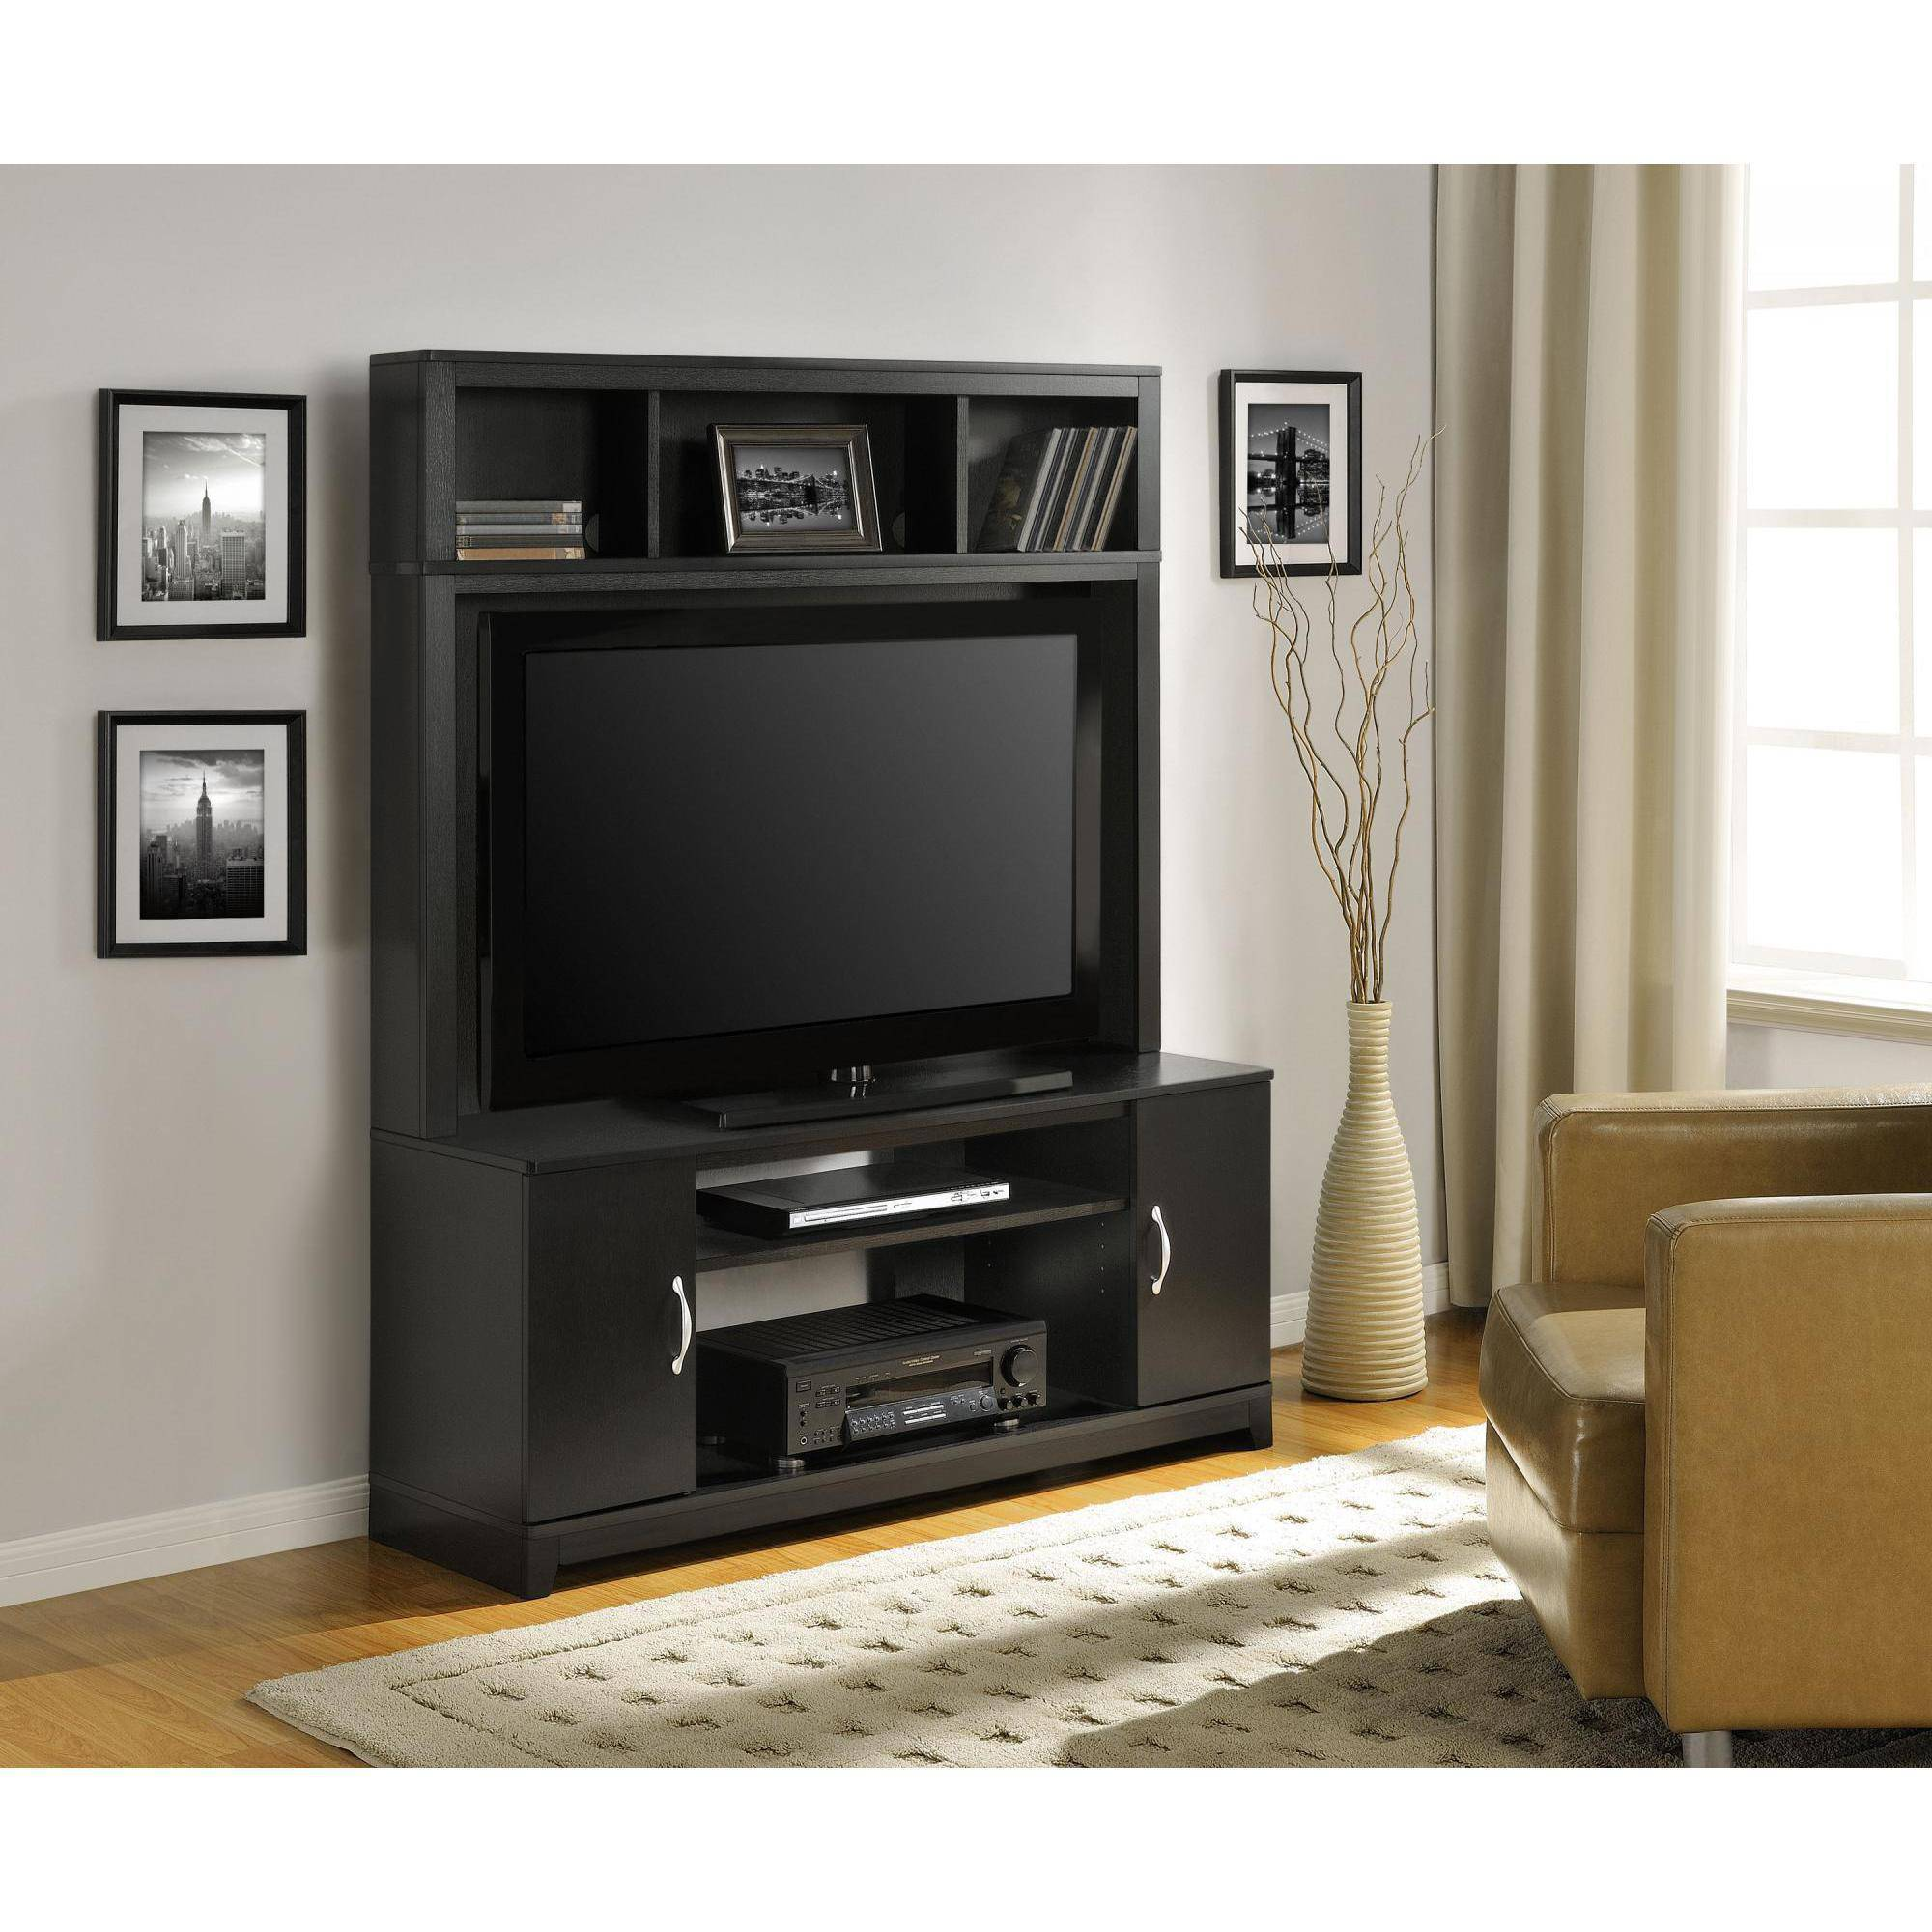 click thumbnail to enlarge - Tv Stands Entertainment Centers